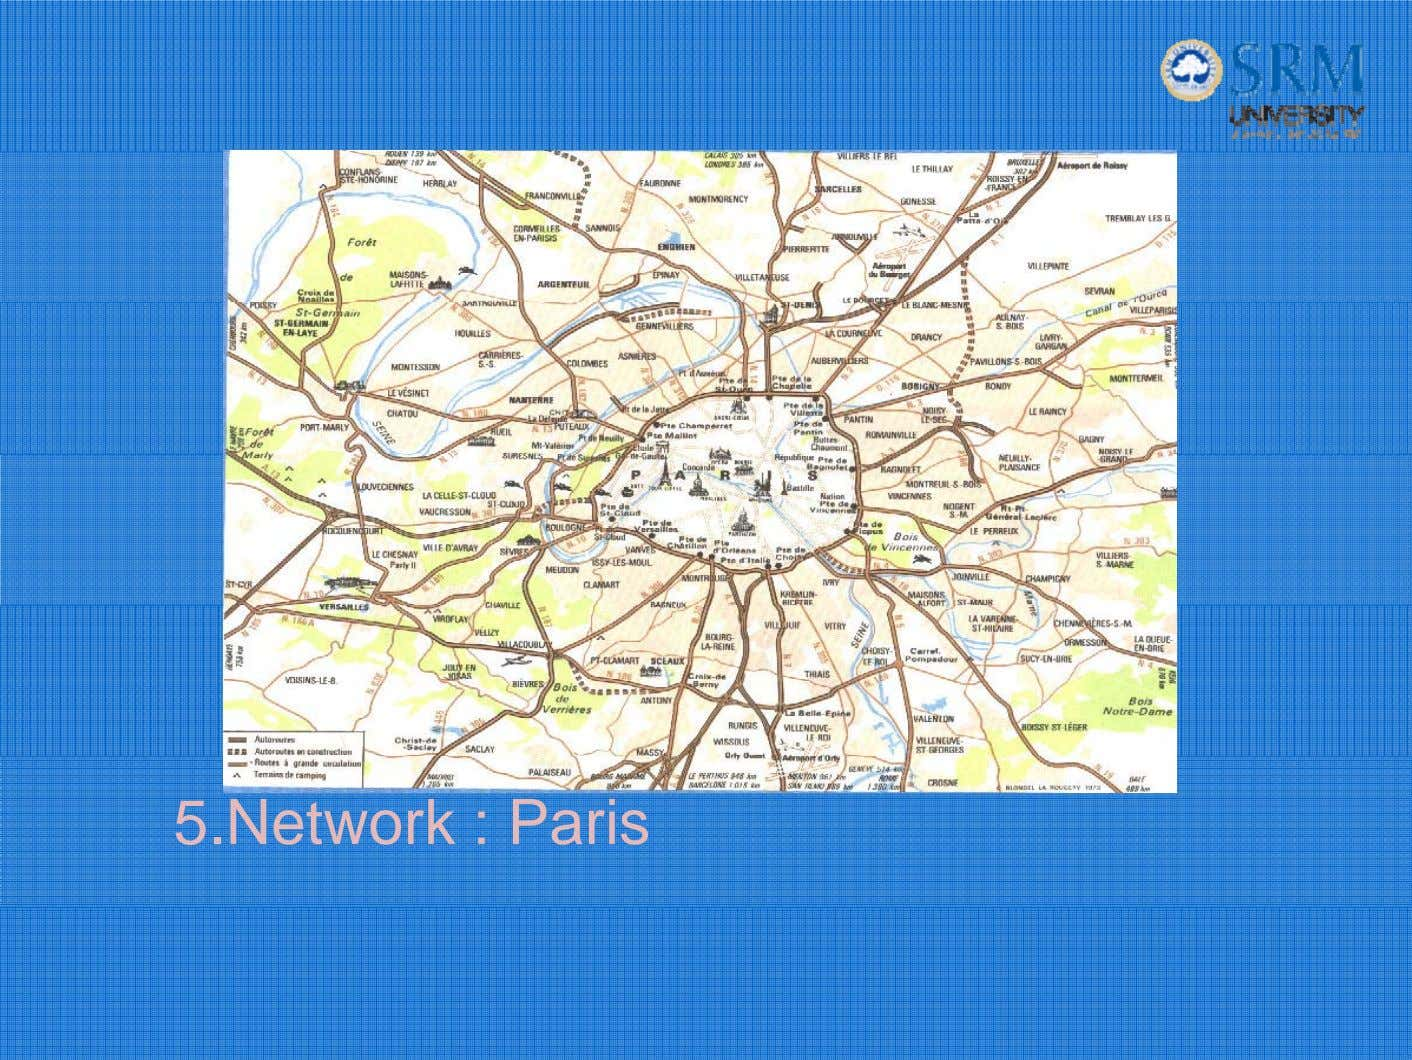 5.Network : Paris